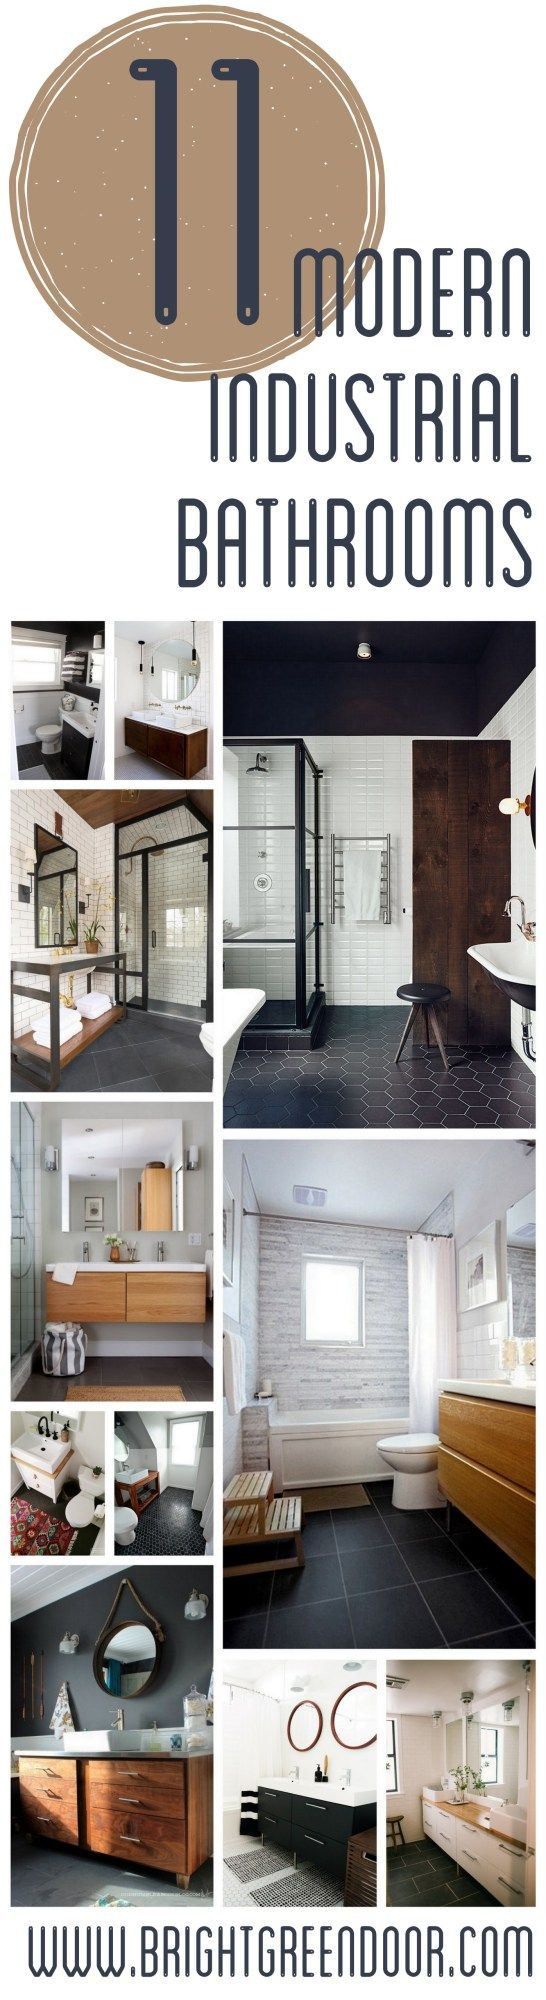 Love the bottom left photo for master bath colors......Modern Industrial Black Wood and White Bathrooms www.BrightGreenDoor.com